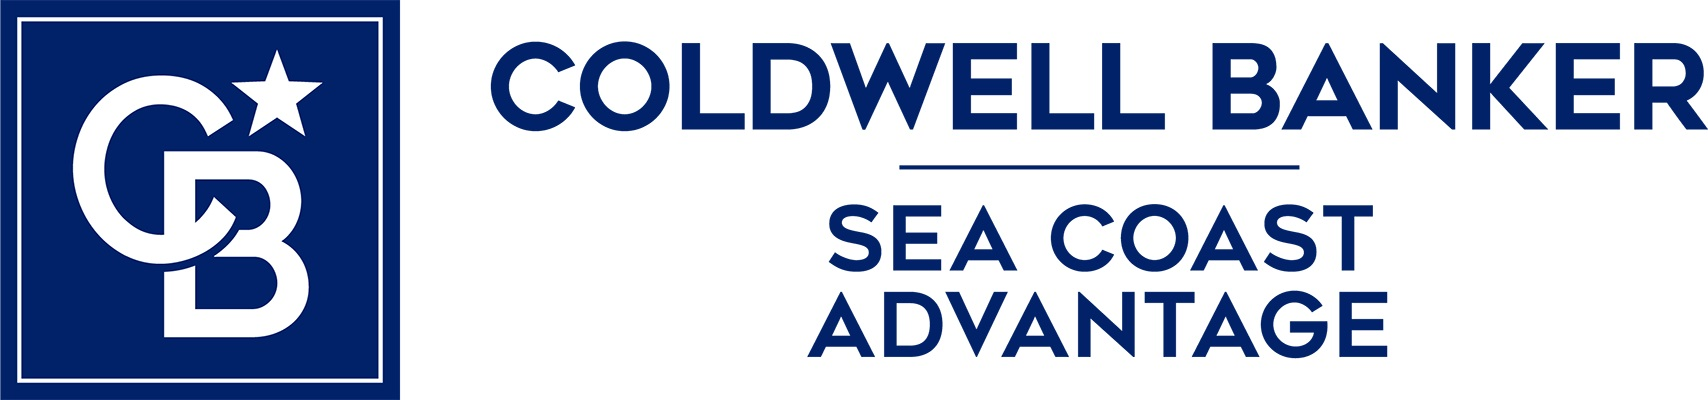 Anne Freeman - Coldwell Banker Sea Coast Advantage Realty